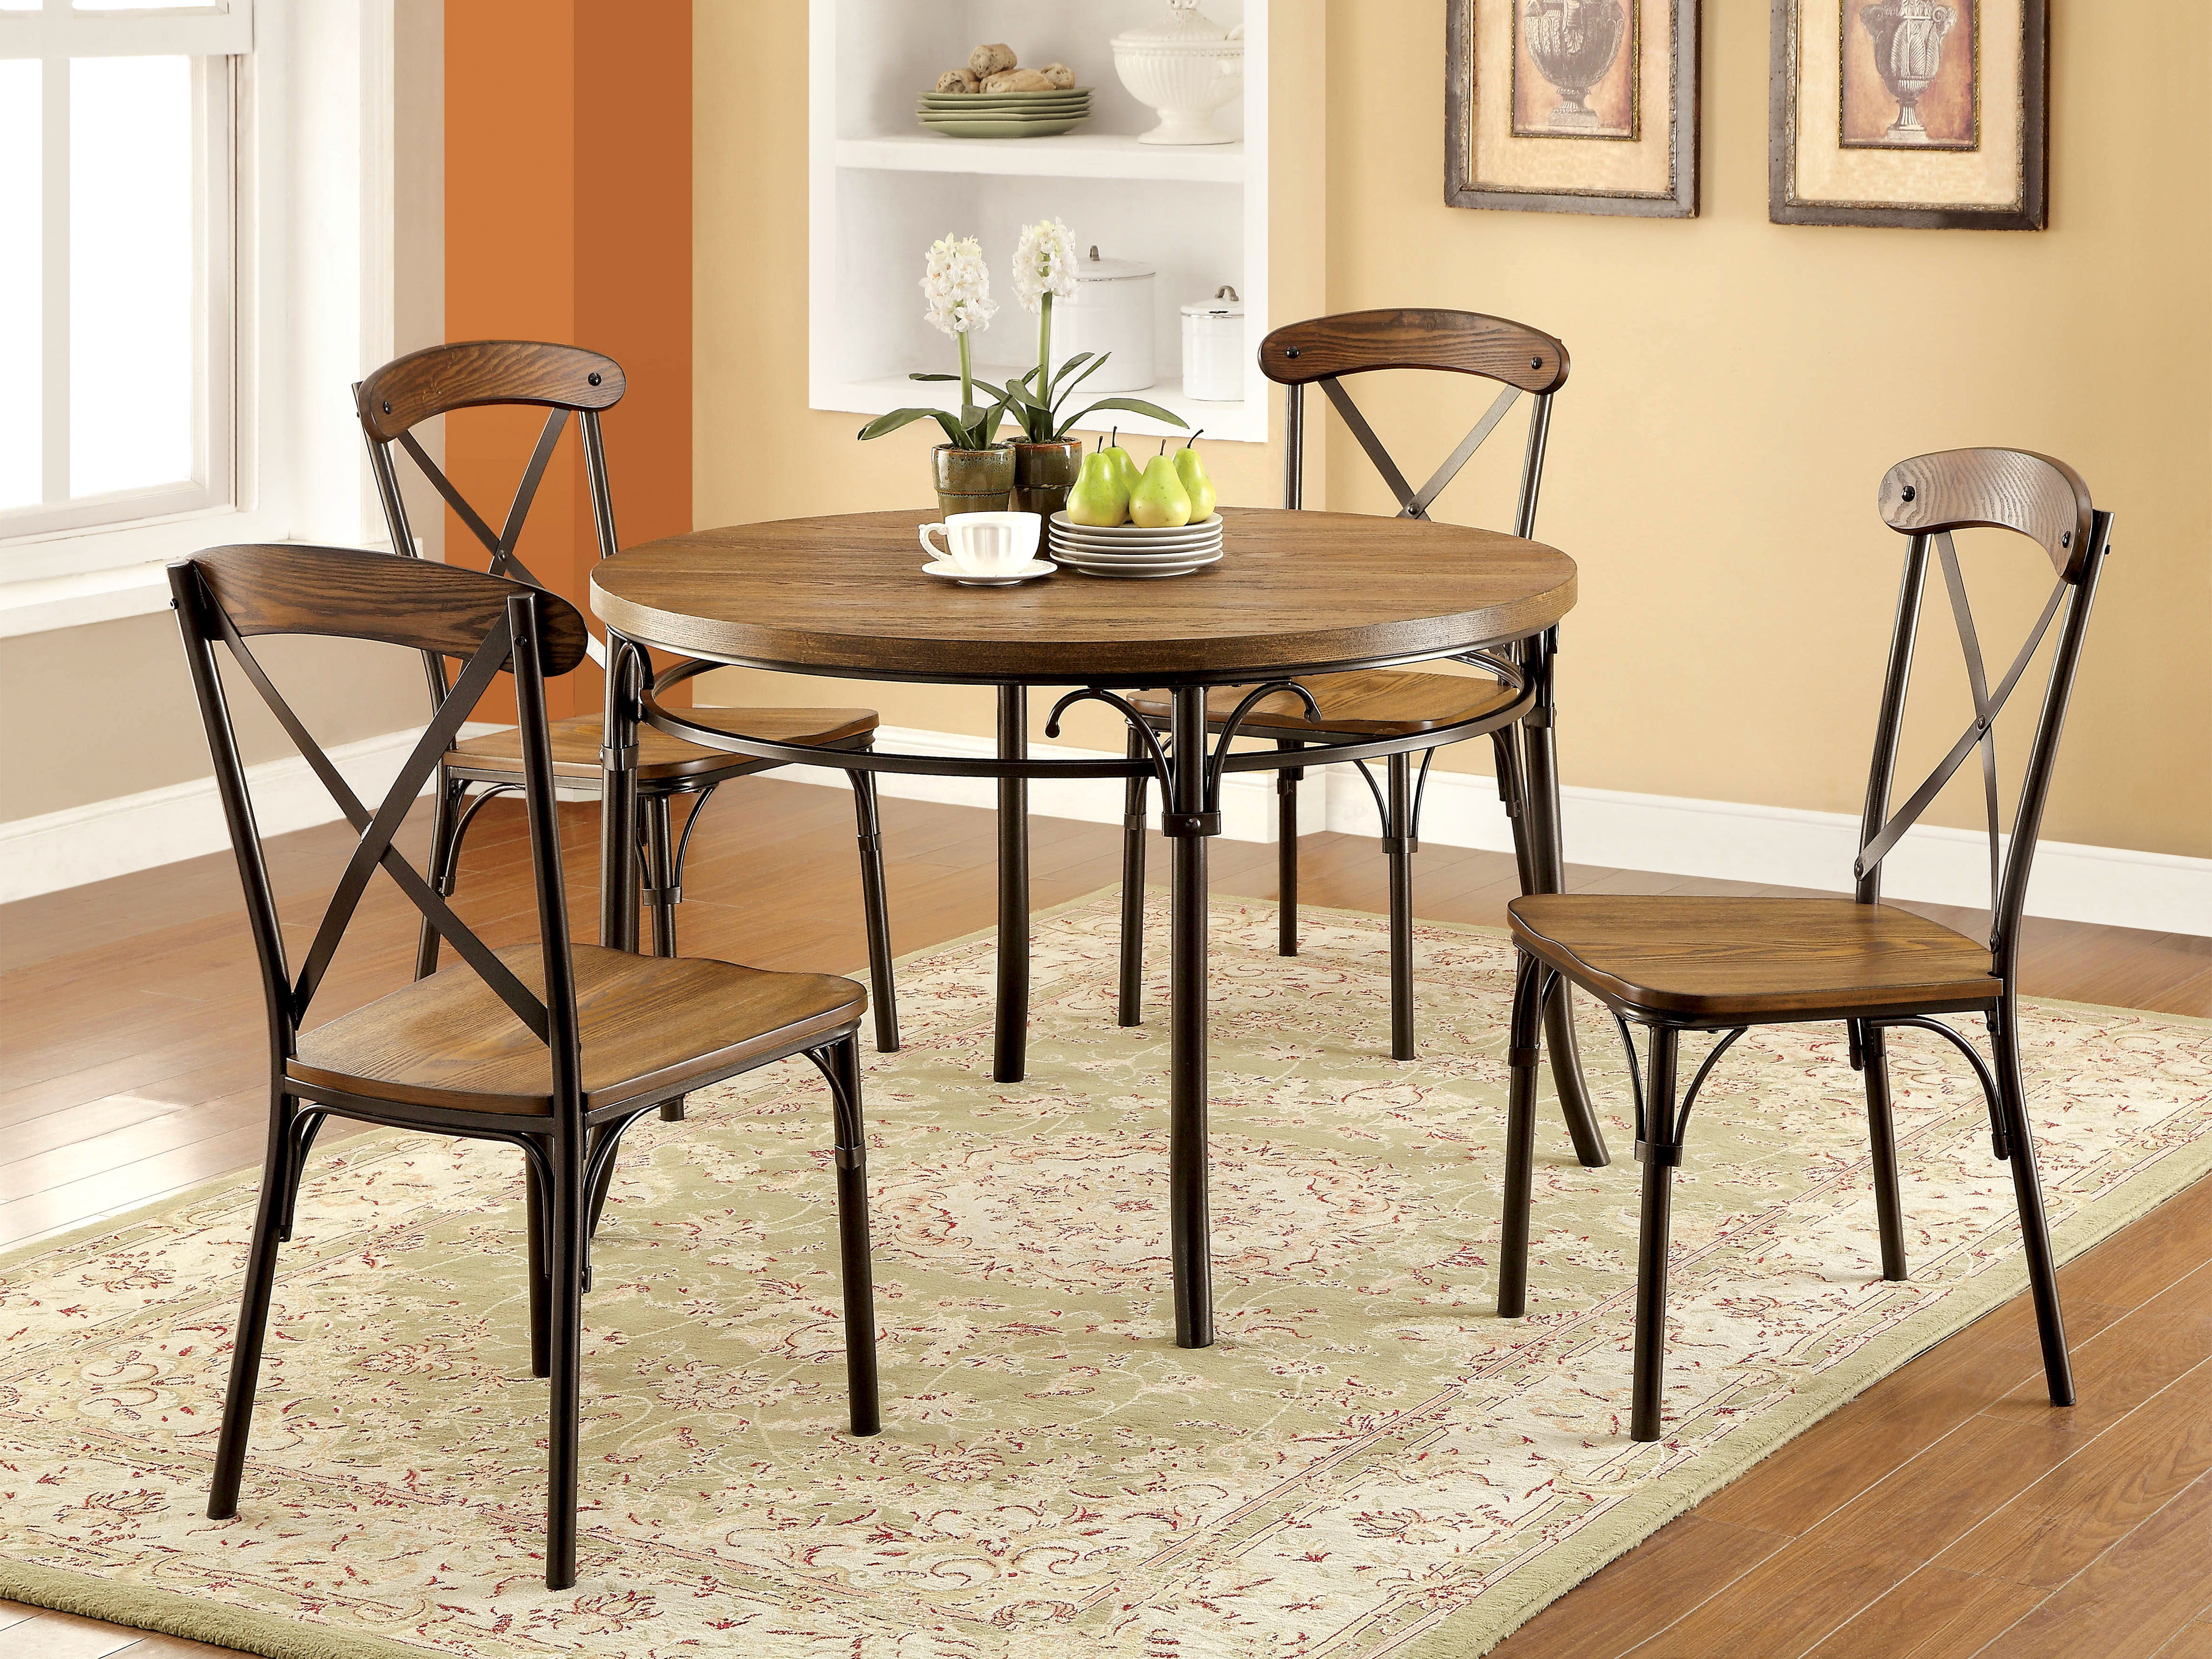 p P industrial kitchen table Furniture of America Bronzed Xallie 5 Piece Round Industrial Dining Set Home Furniture Dining Kitchen Furniture Dining Sets Collections